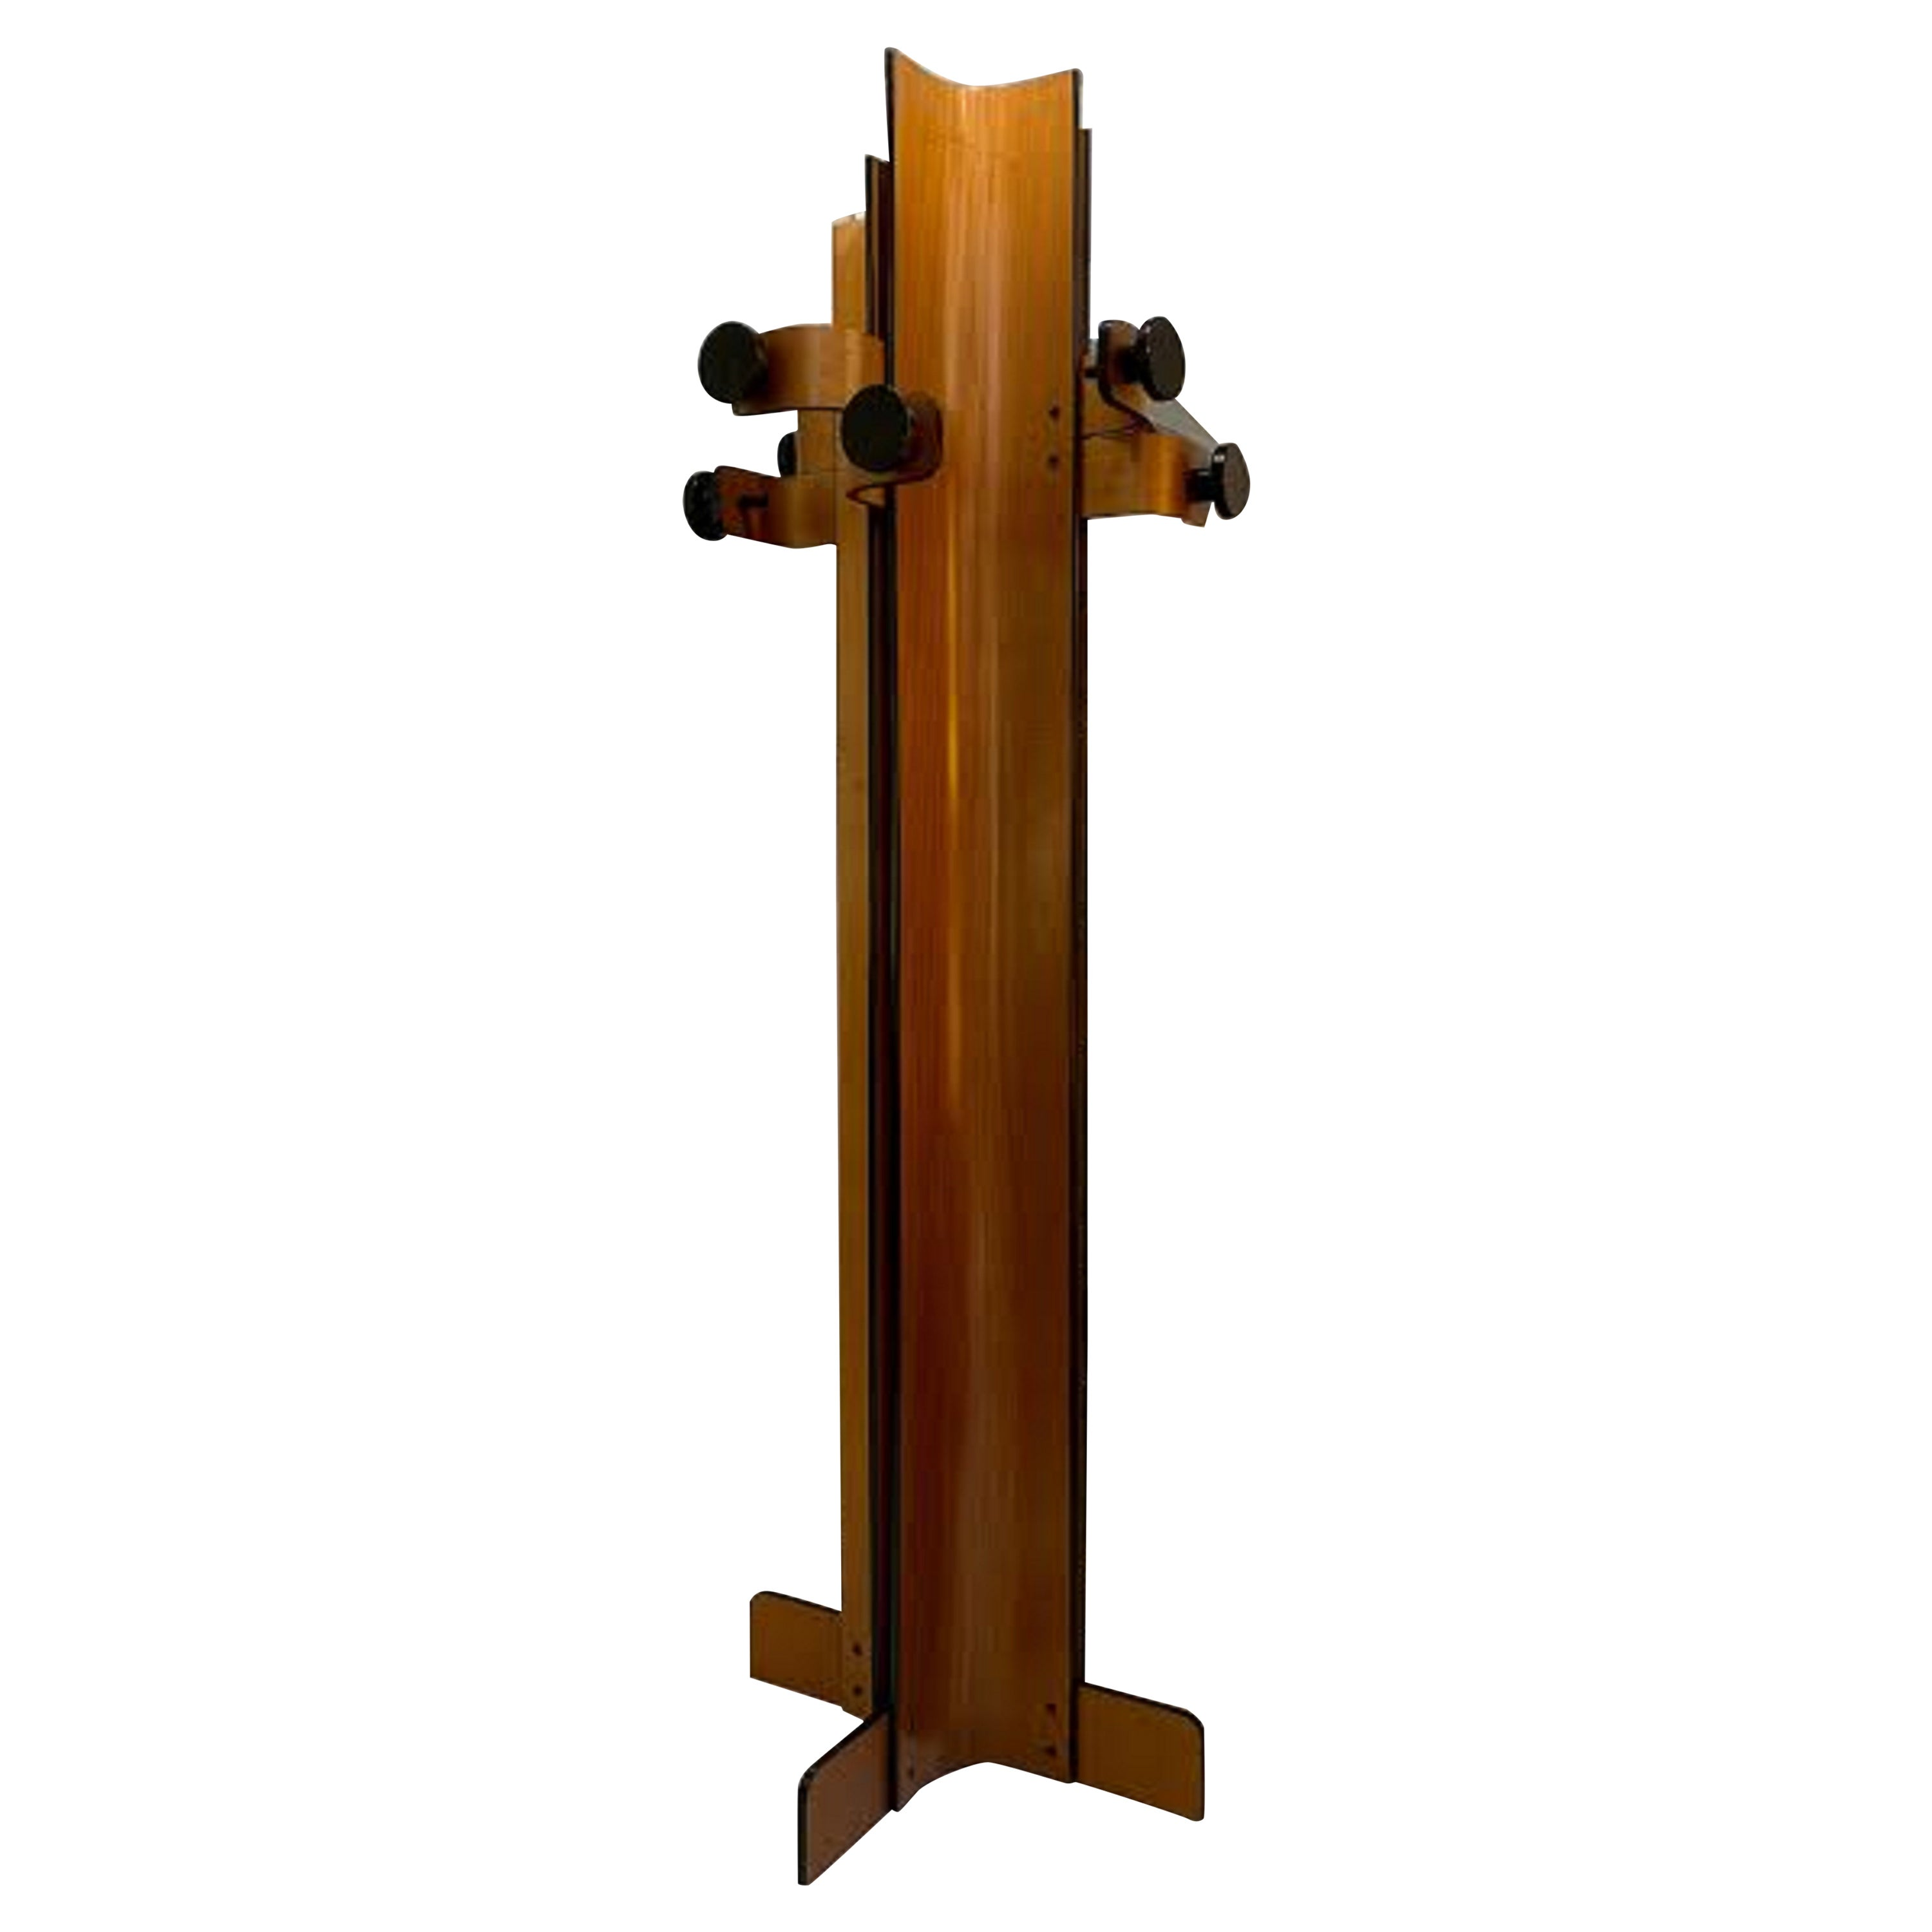 Coat Rack in Multiplex Curved Wood by Campo Graffi, circa 1960